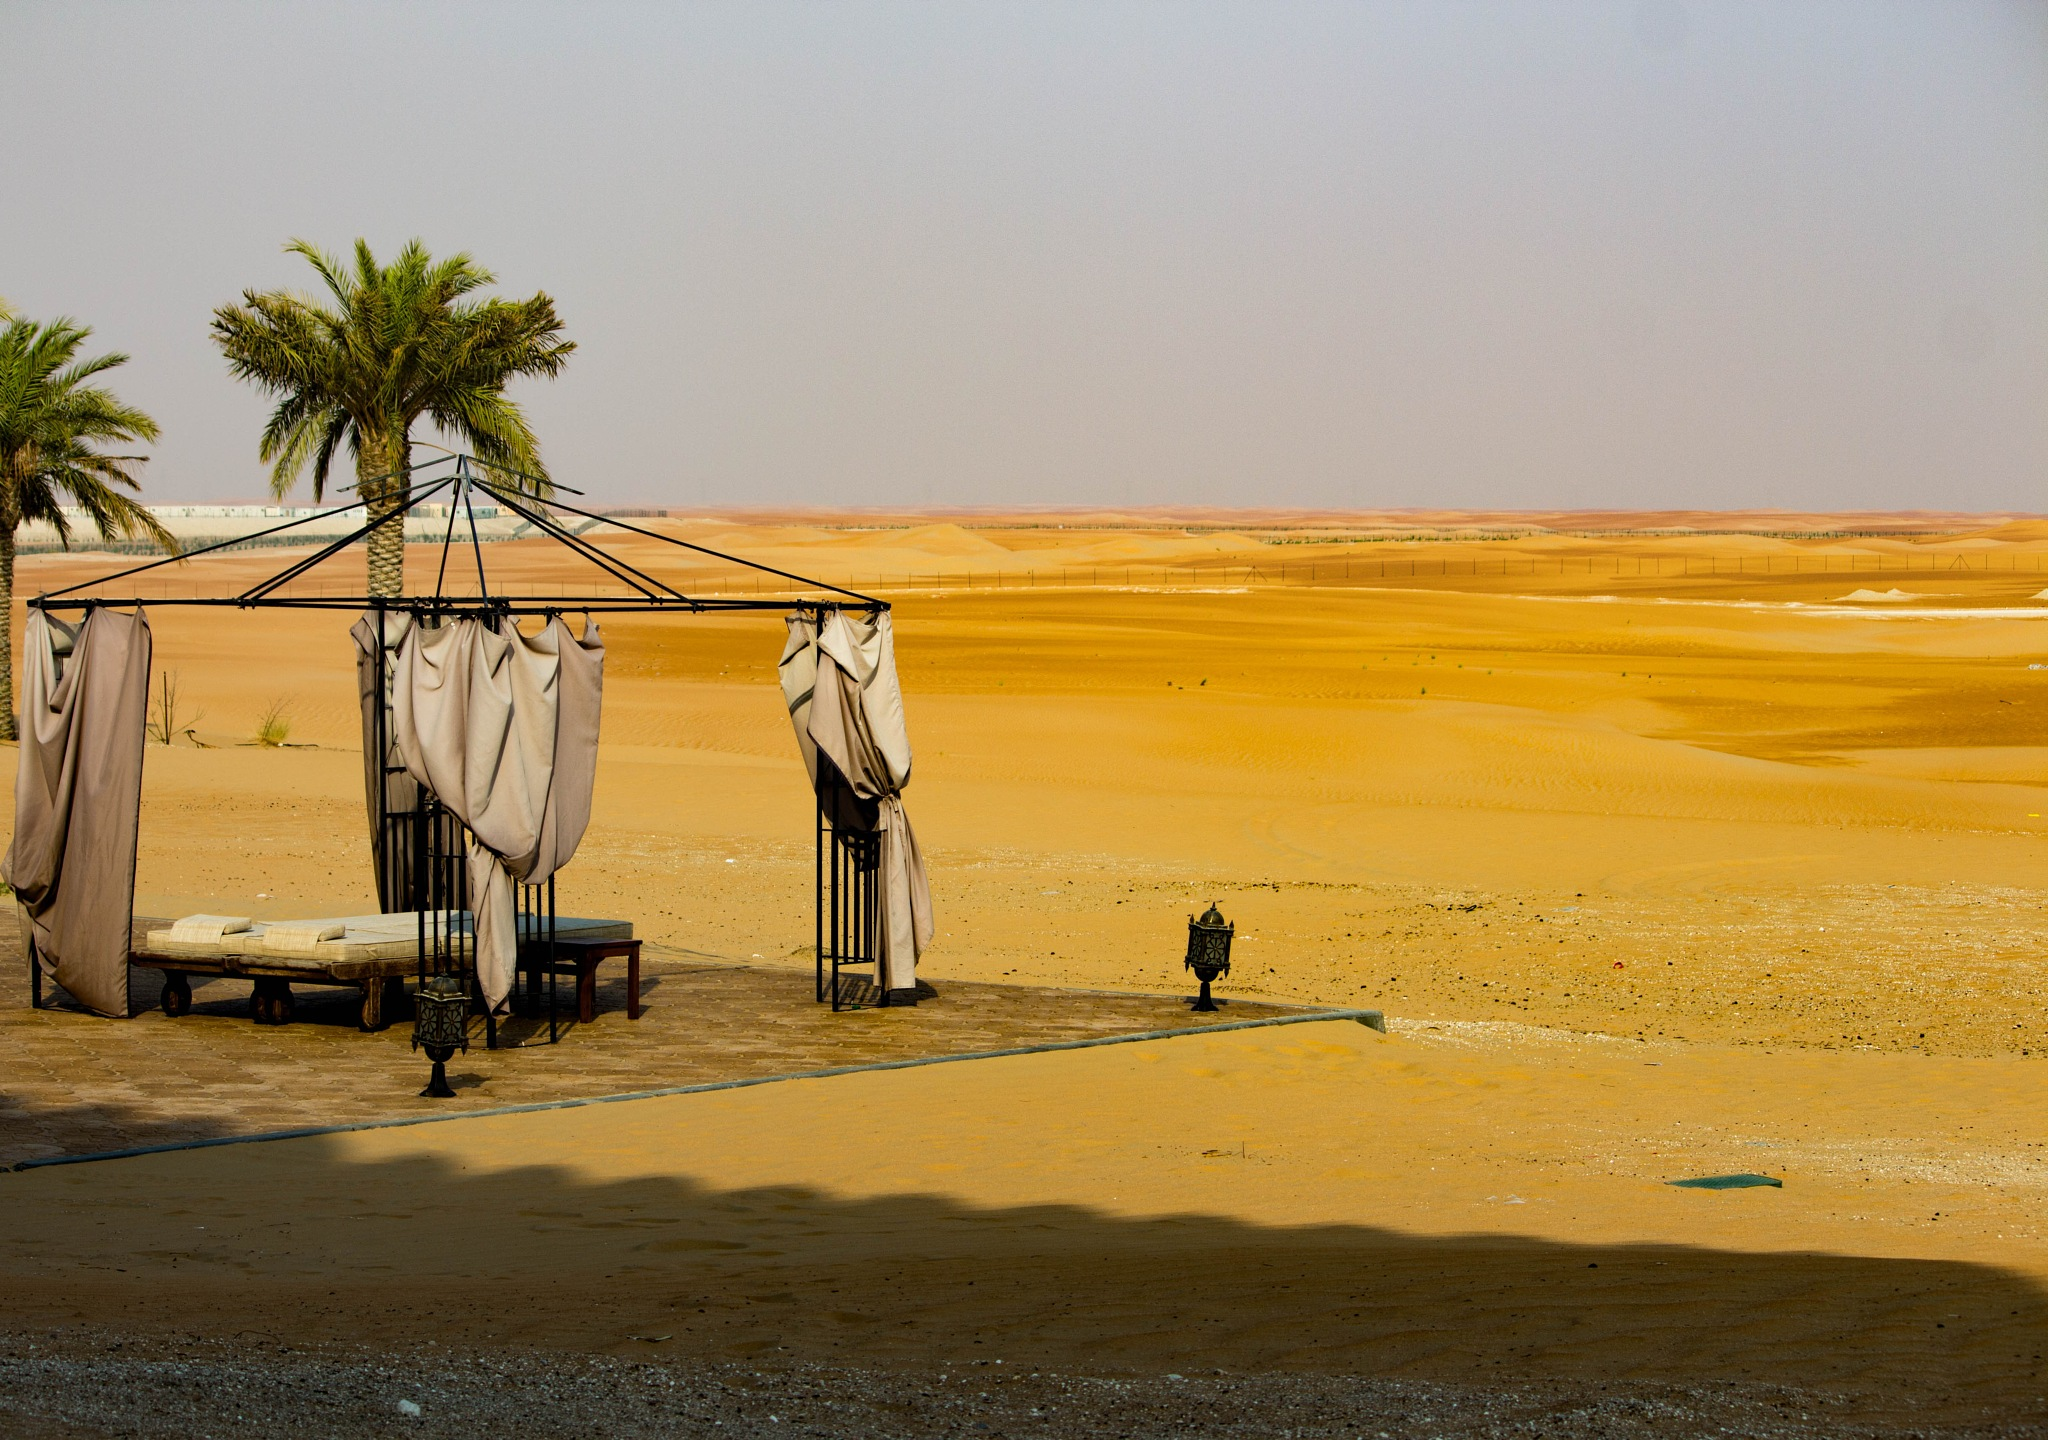 Rest place by the desert by Sonans